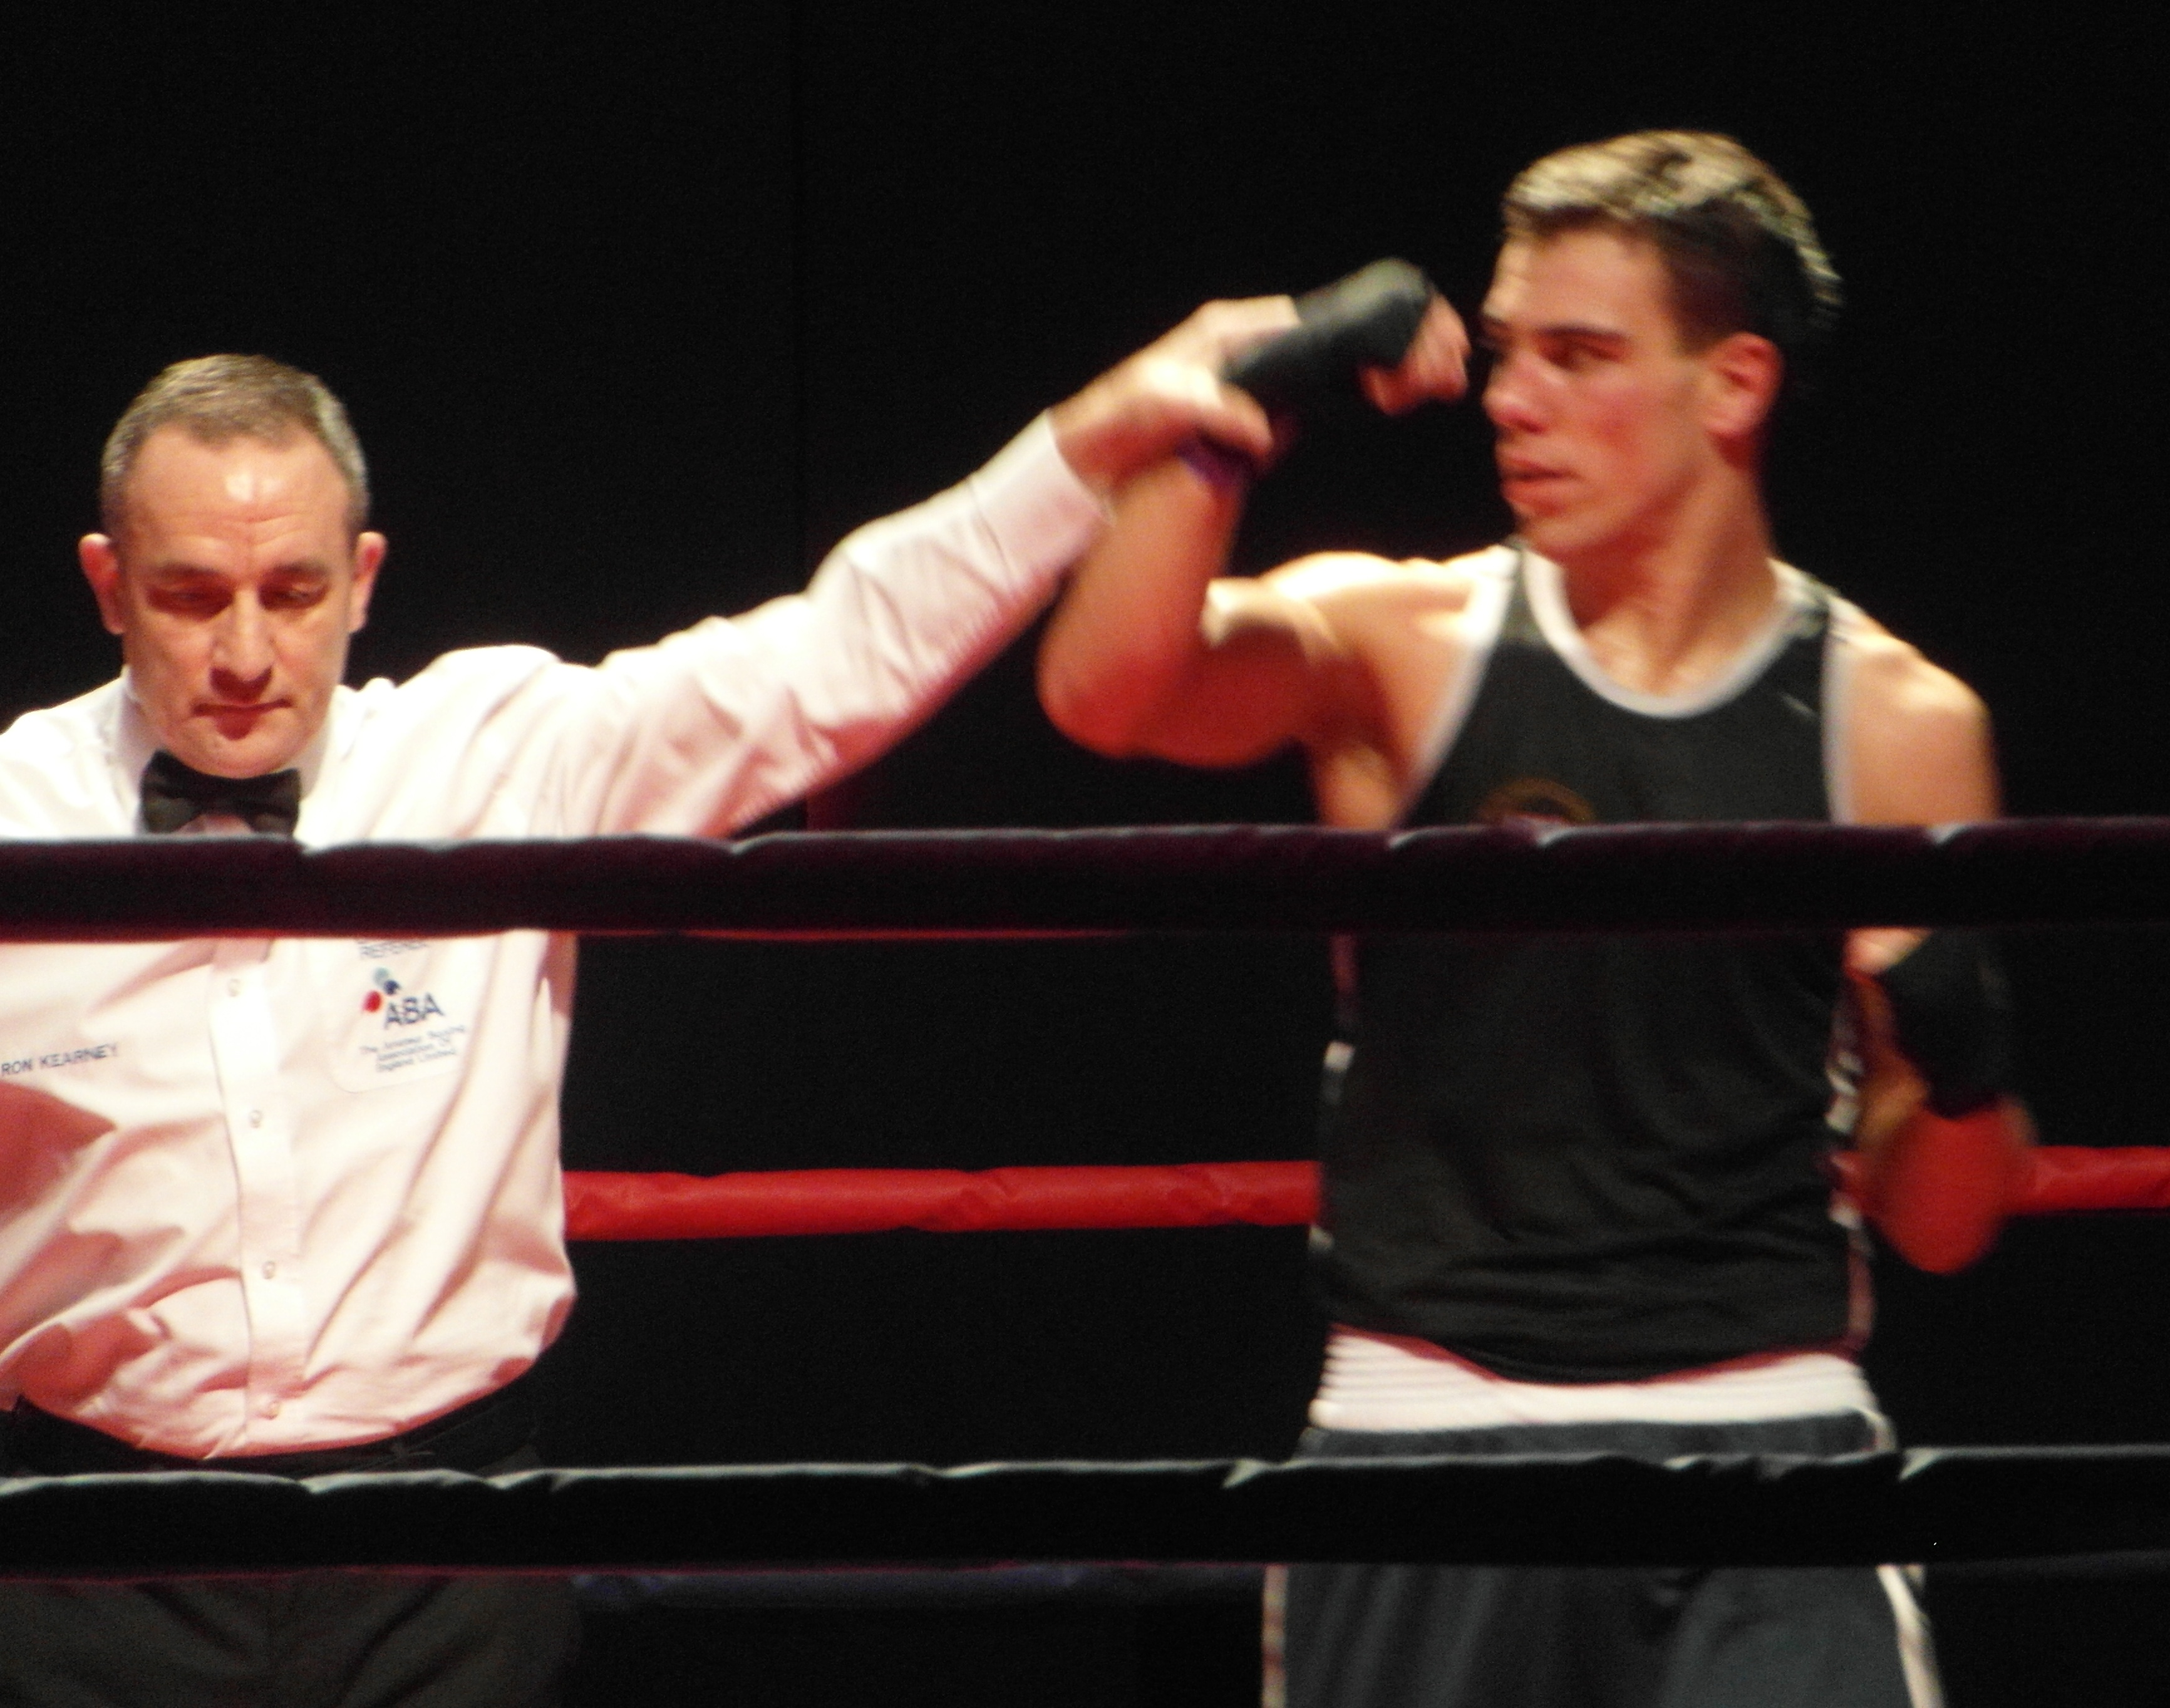 Wear Boxing | Boxing site following boxing in the North East of